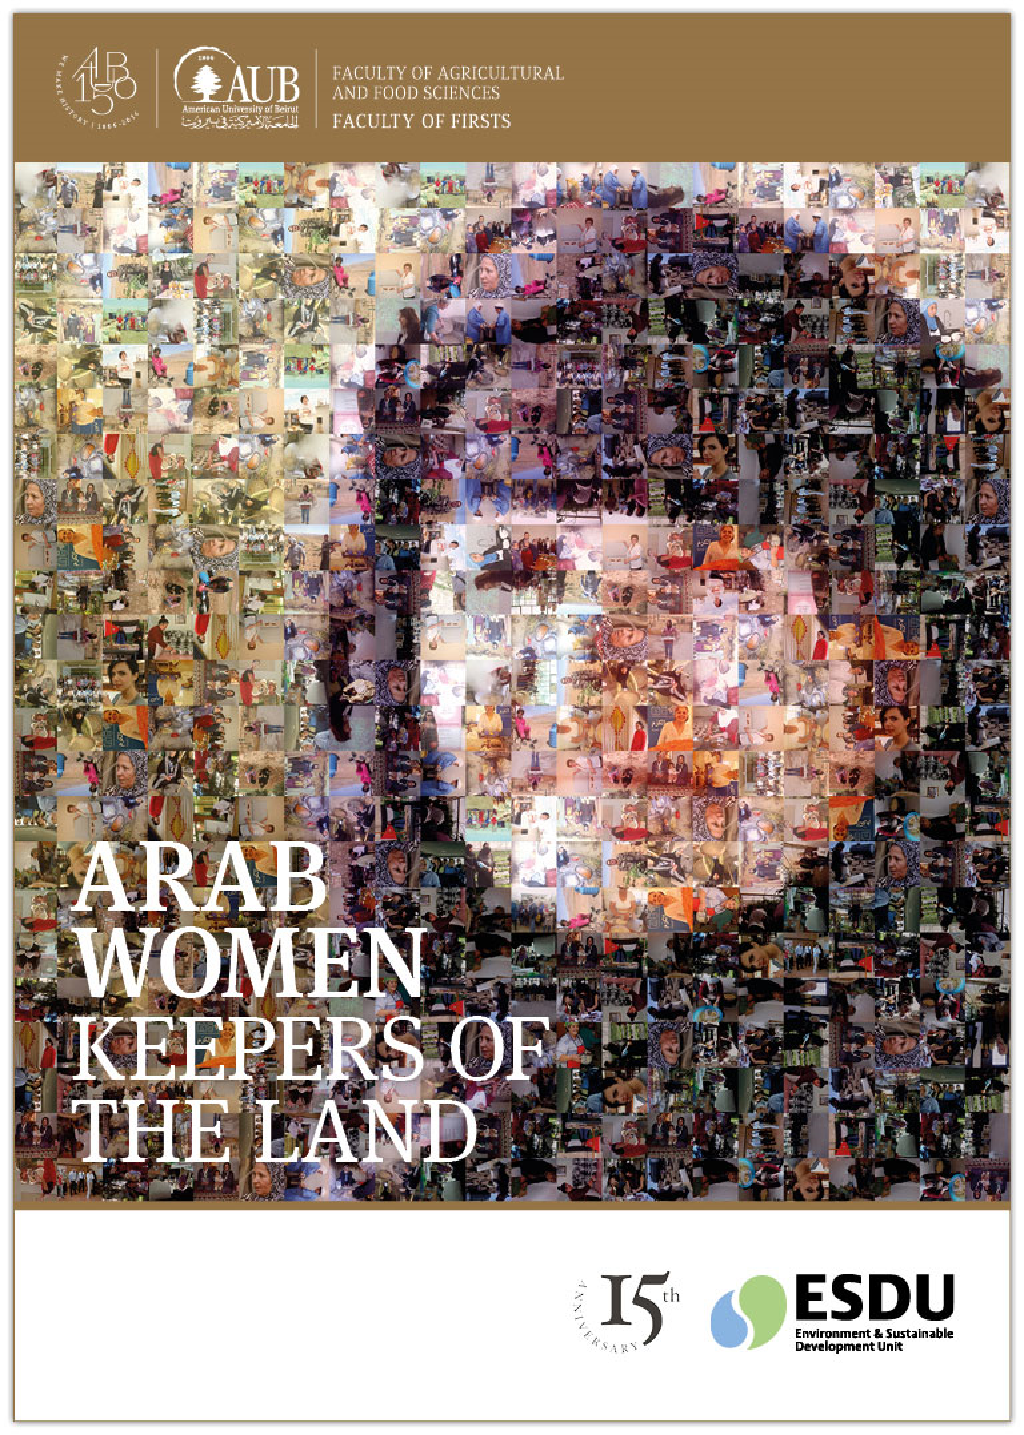 arab women keepers of land poster 15th anniversary.png